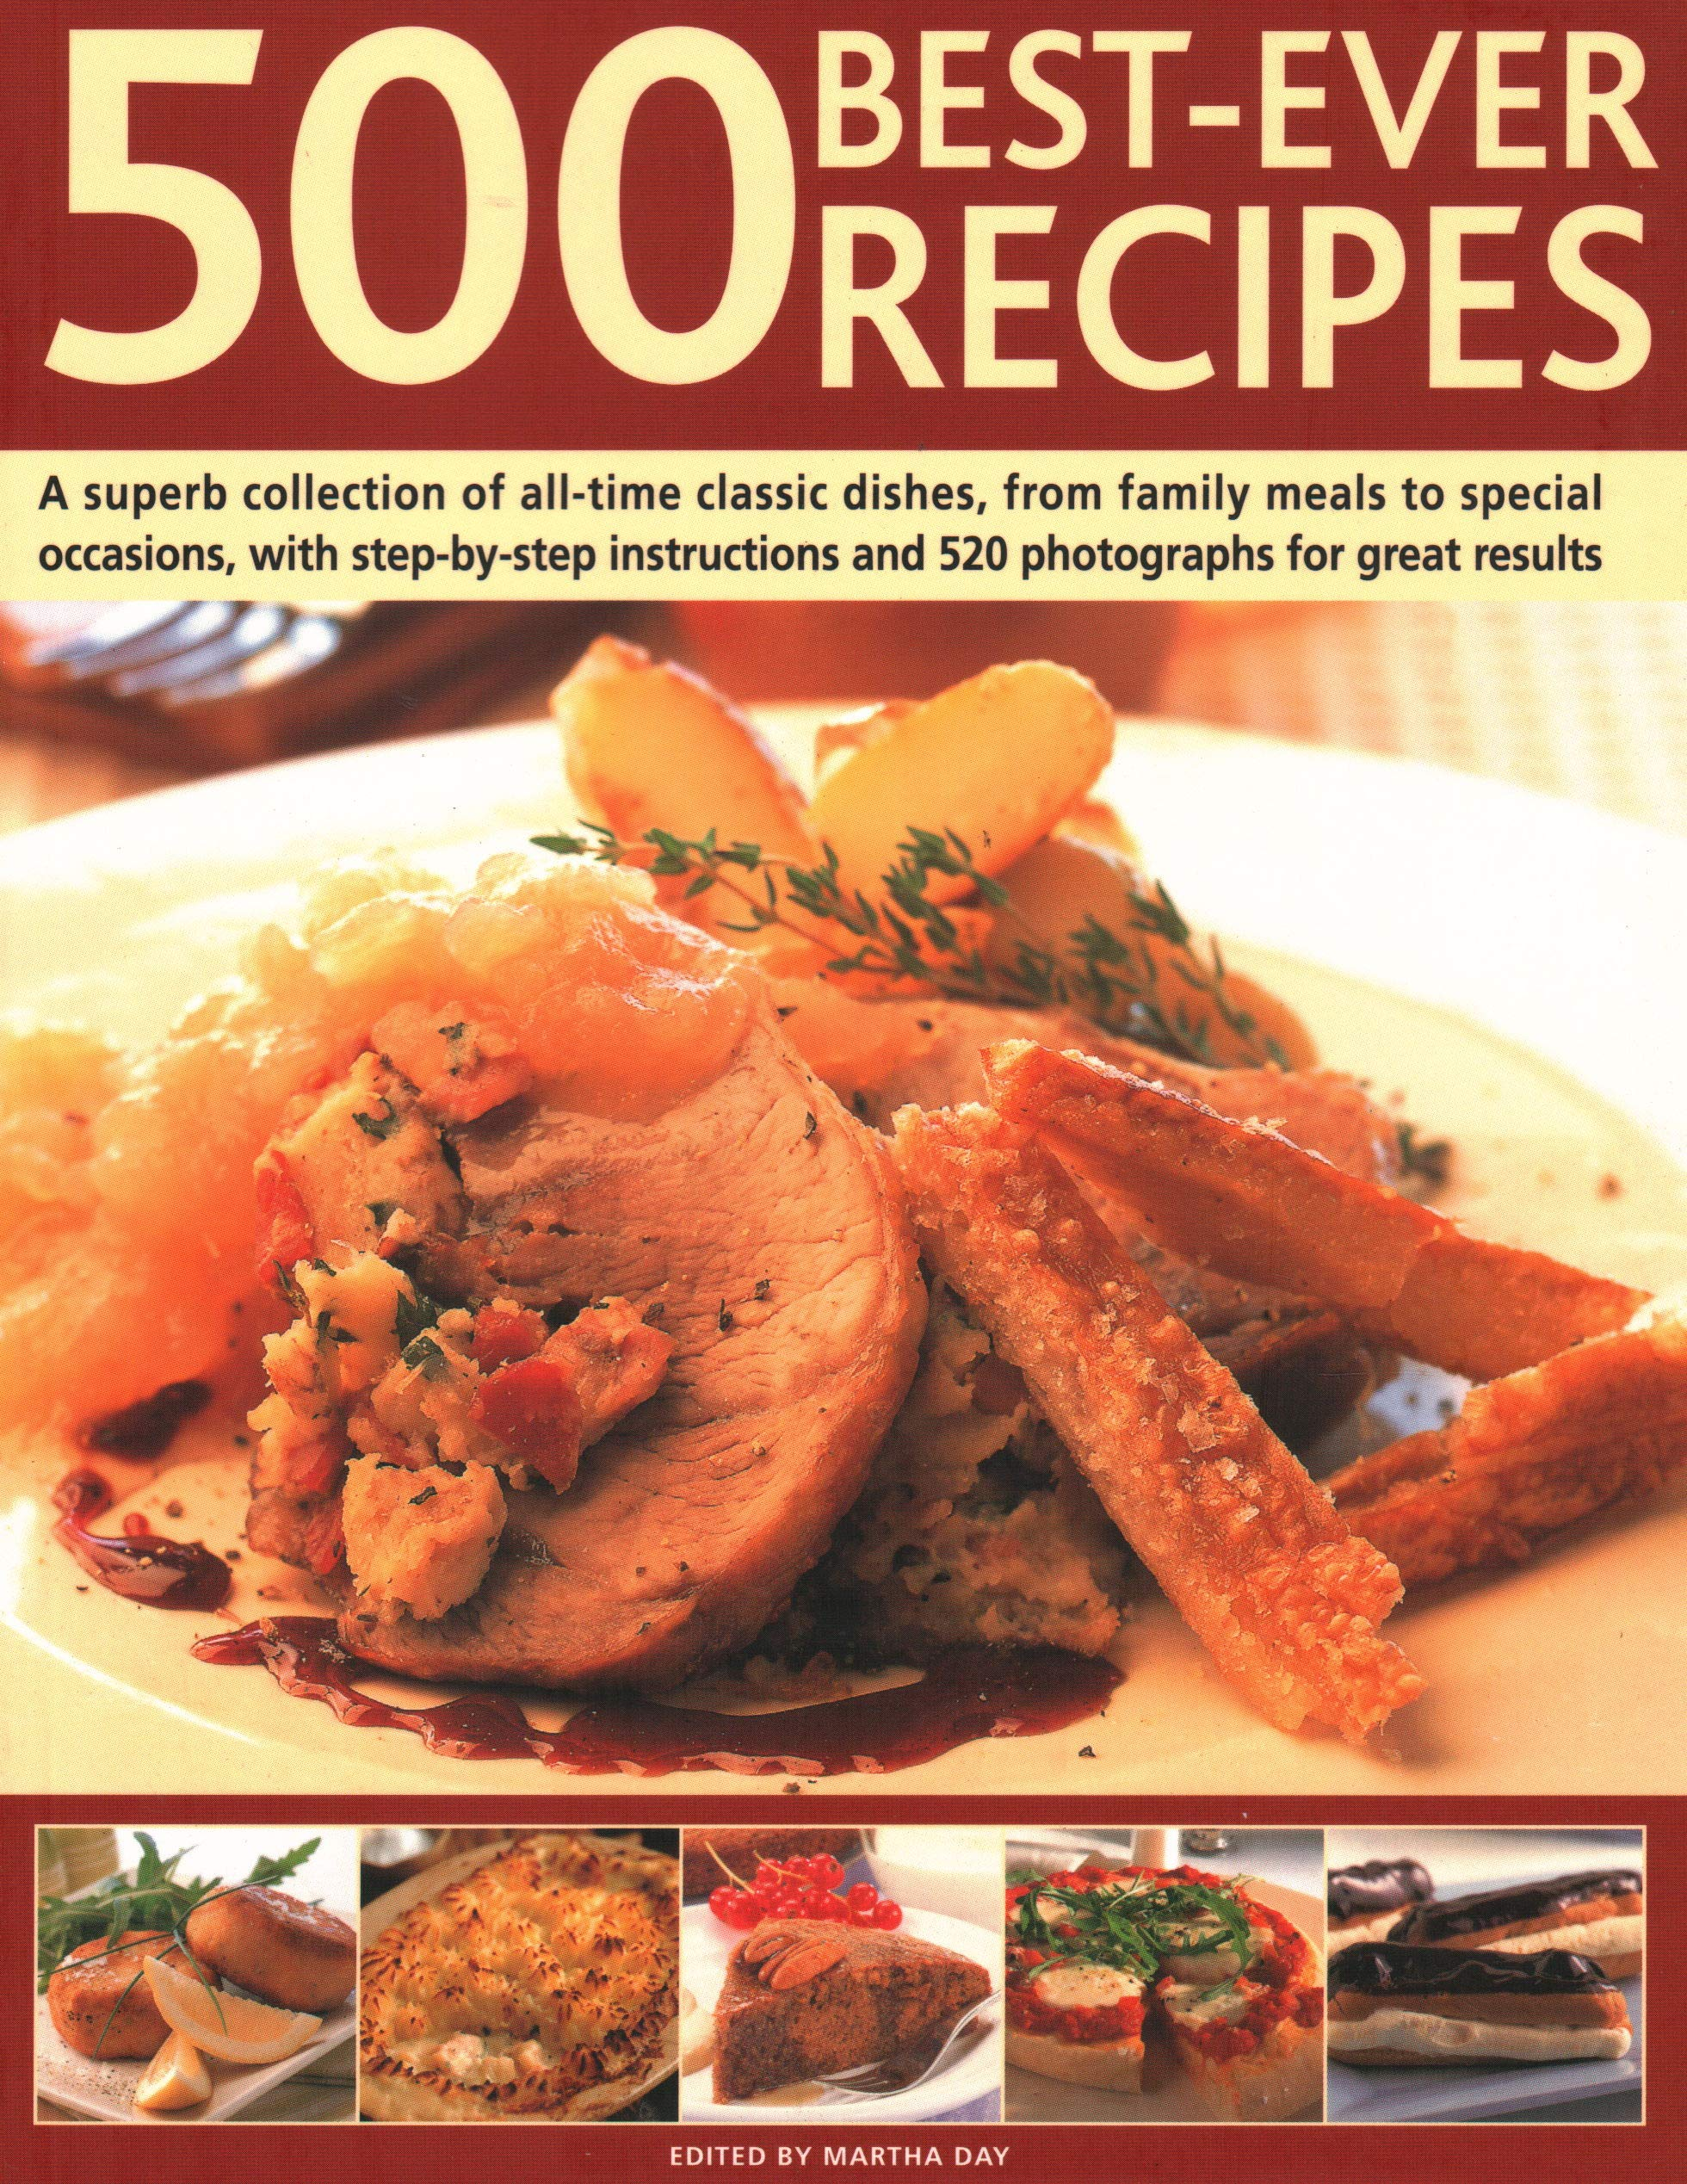 Download 500 Best Ever Recipes: A Superb Collection Of All-Time Favourite Dishes, From Family Meals To Special Occasions, Shown In 520 Colour Photographs For Great Results Every Time pdf